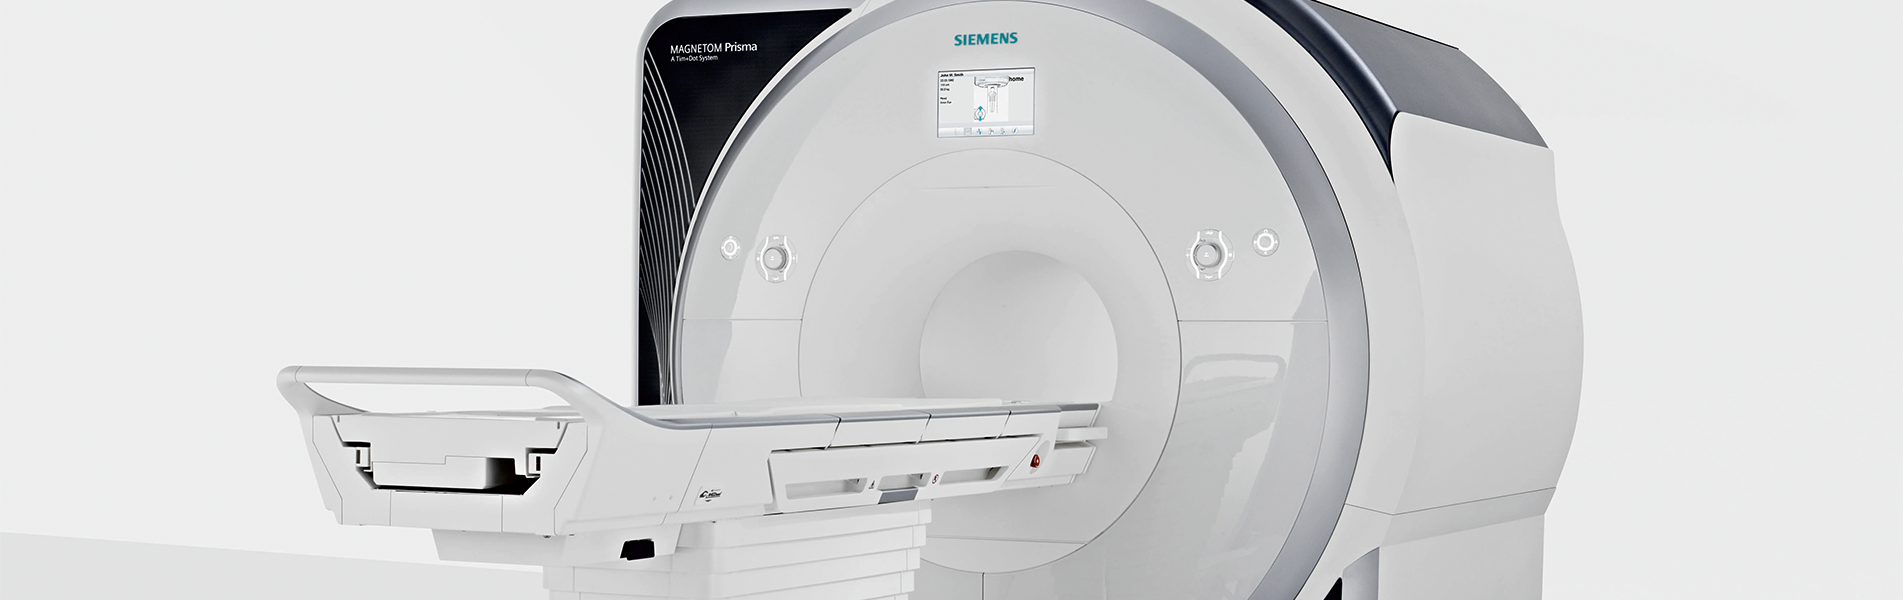 MRI Safety Information for Patients